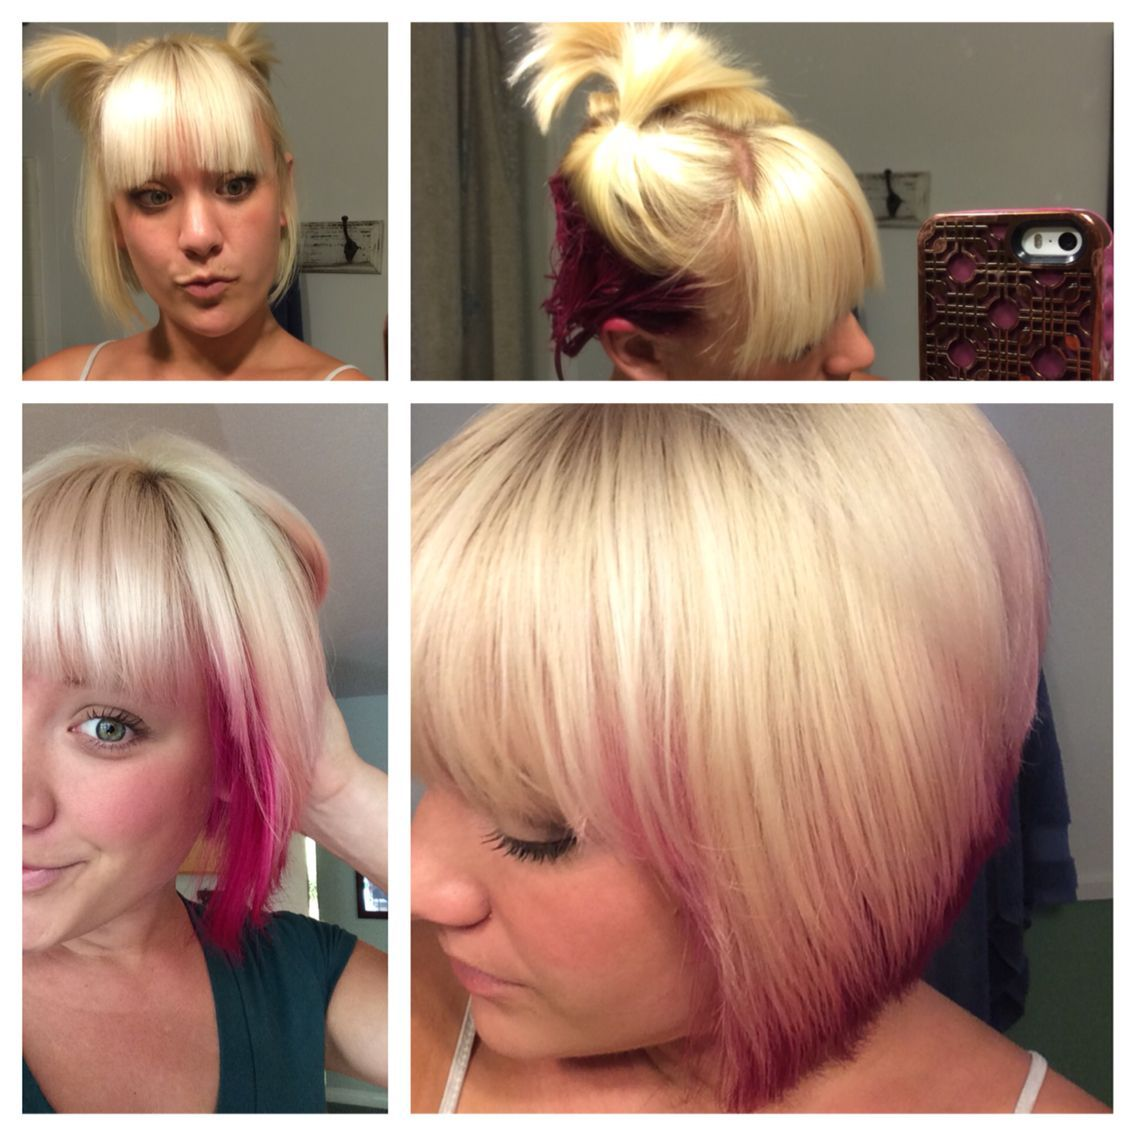 Best hairstyle for square faces arabic hairstyles fine hair and diy pink and blonde tasteful under color on a blonde bob used punky color solutioingenieria Image collections